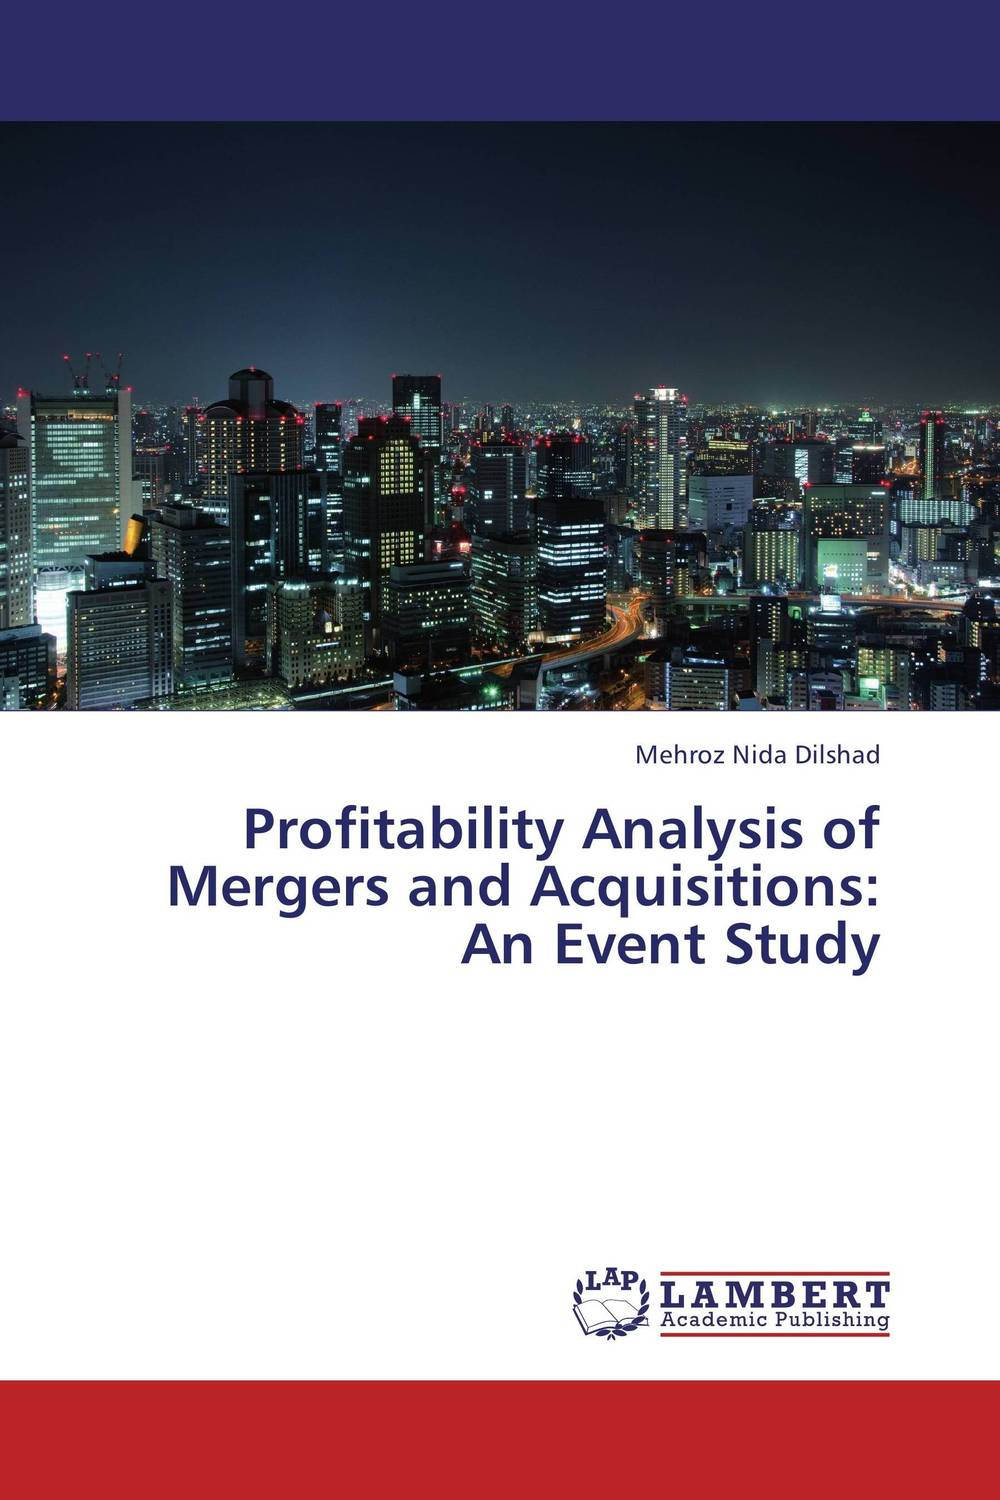 Profitability Analysis of Mergers and  Acquisitions: An Event Study the corporate mergers